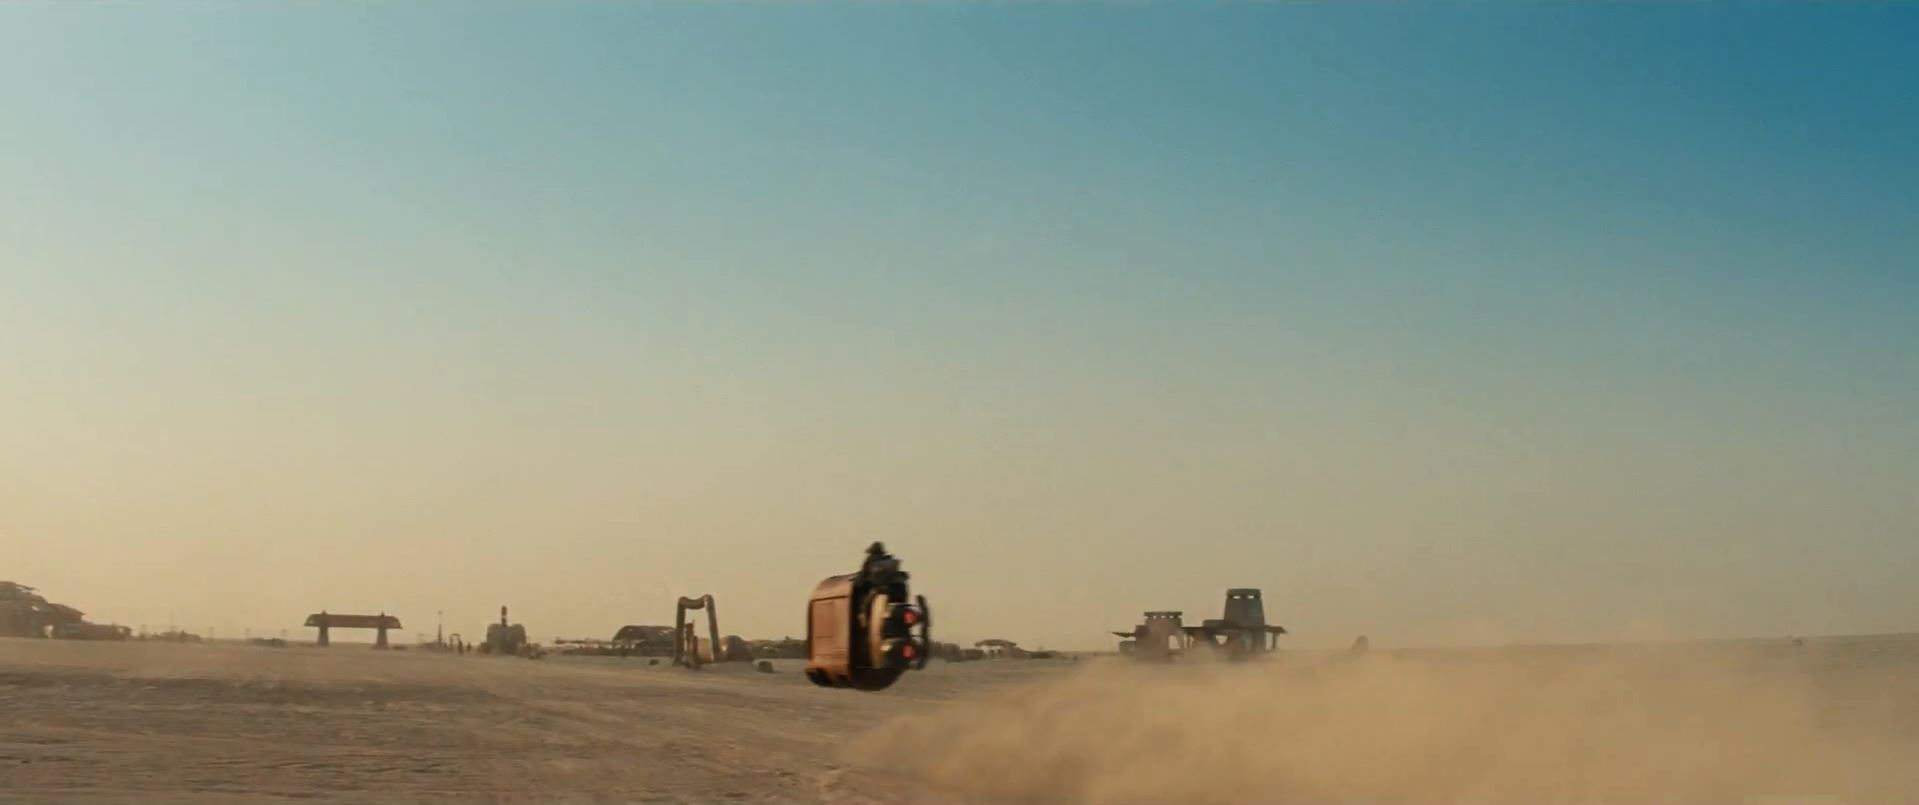 Daisy Ridley flying away Star Wars Episode 7 trailer released